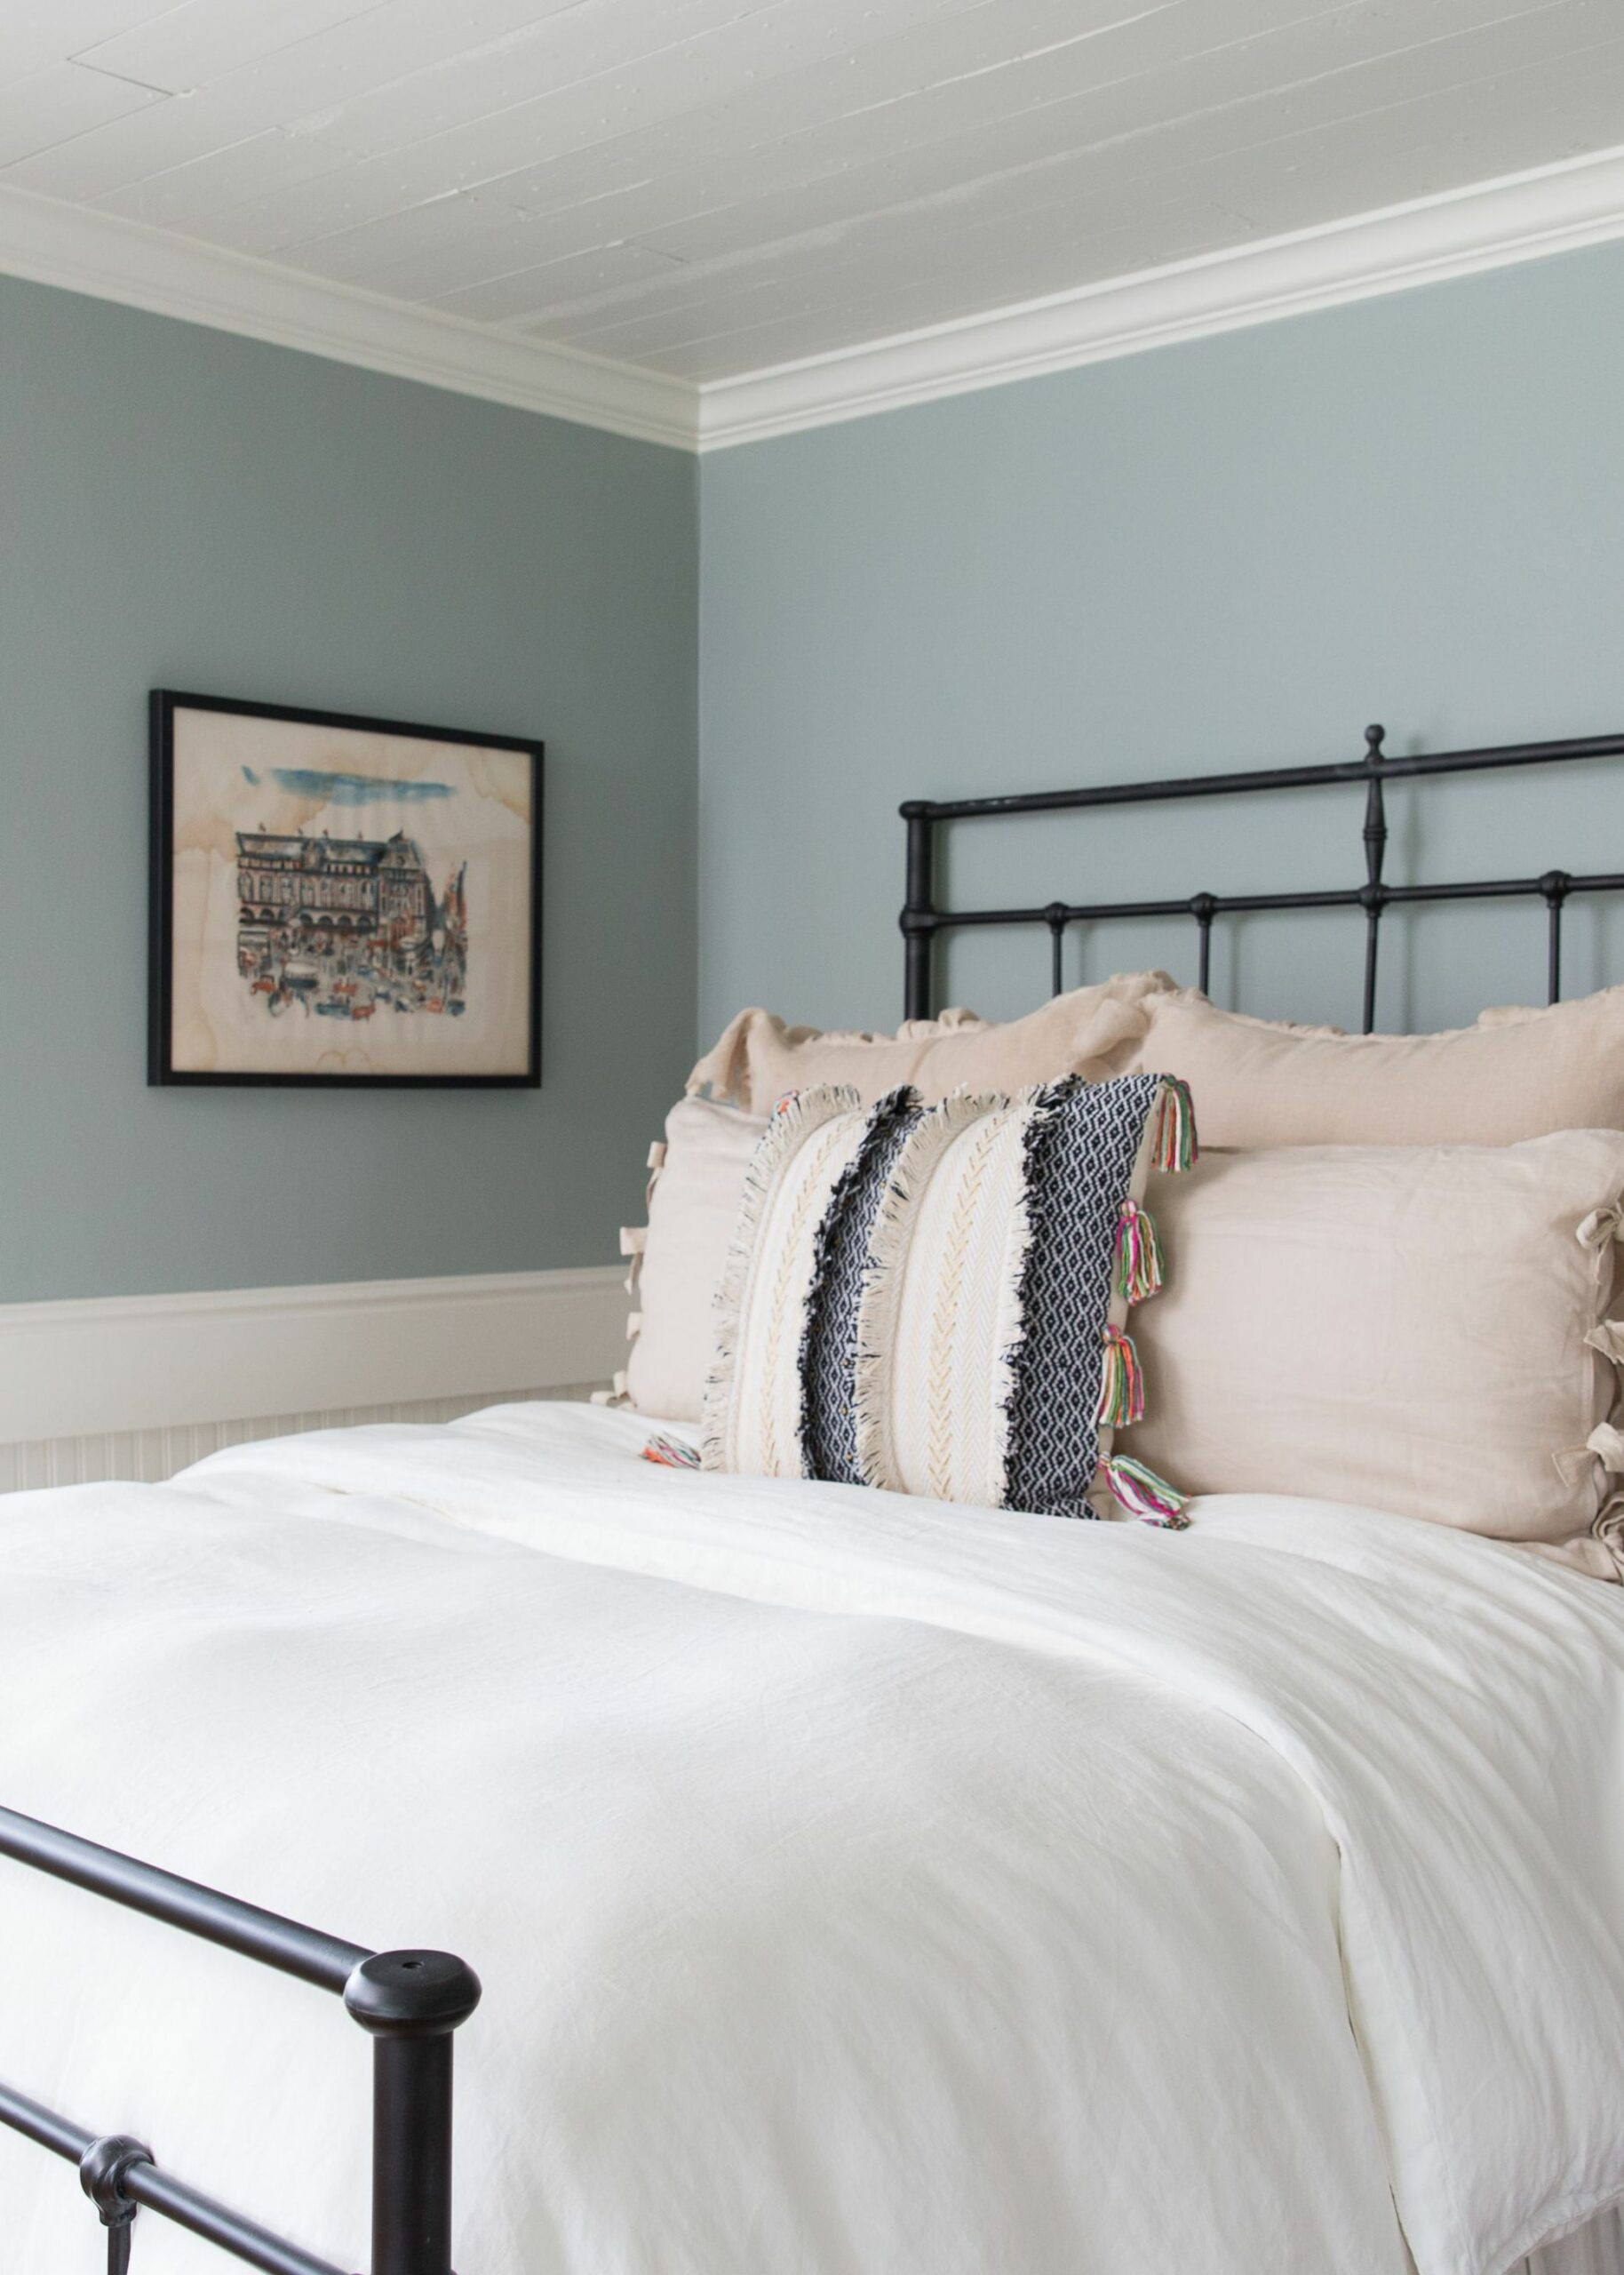 Stay - Vacation Rentals Designed by Joanna Gaines (With images ...